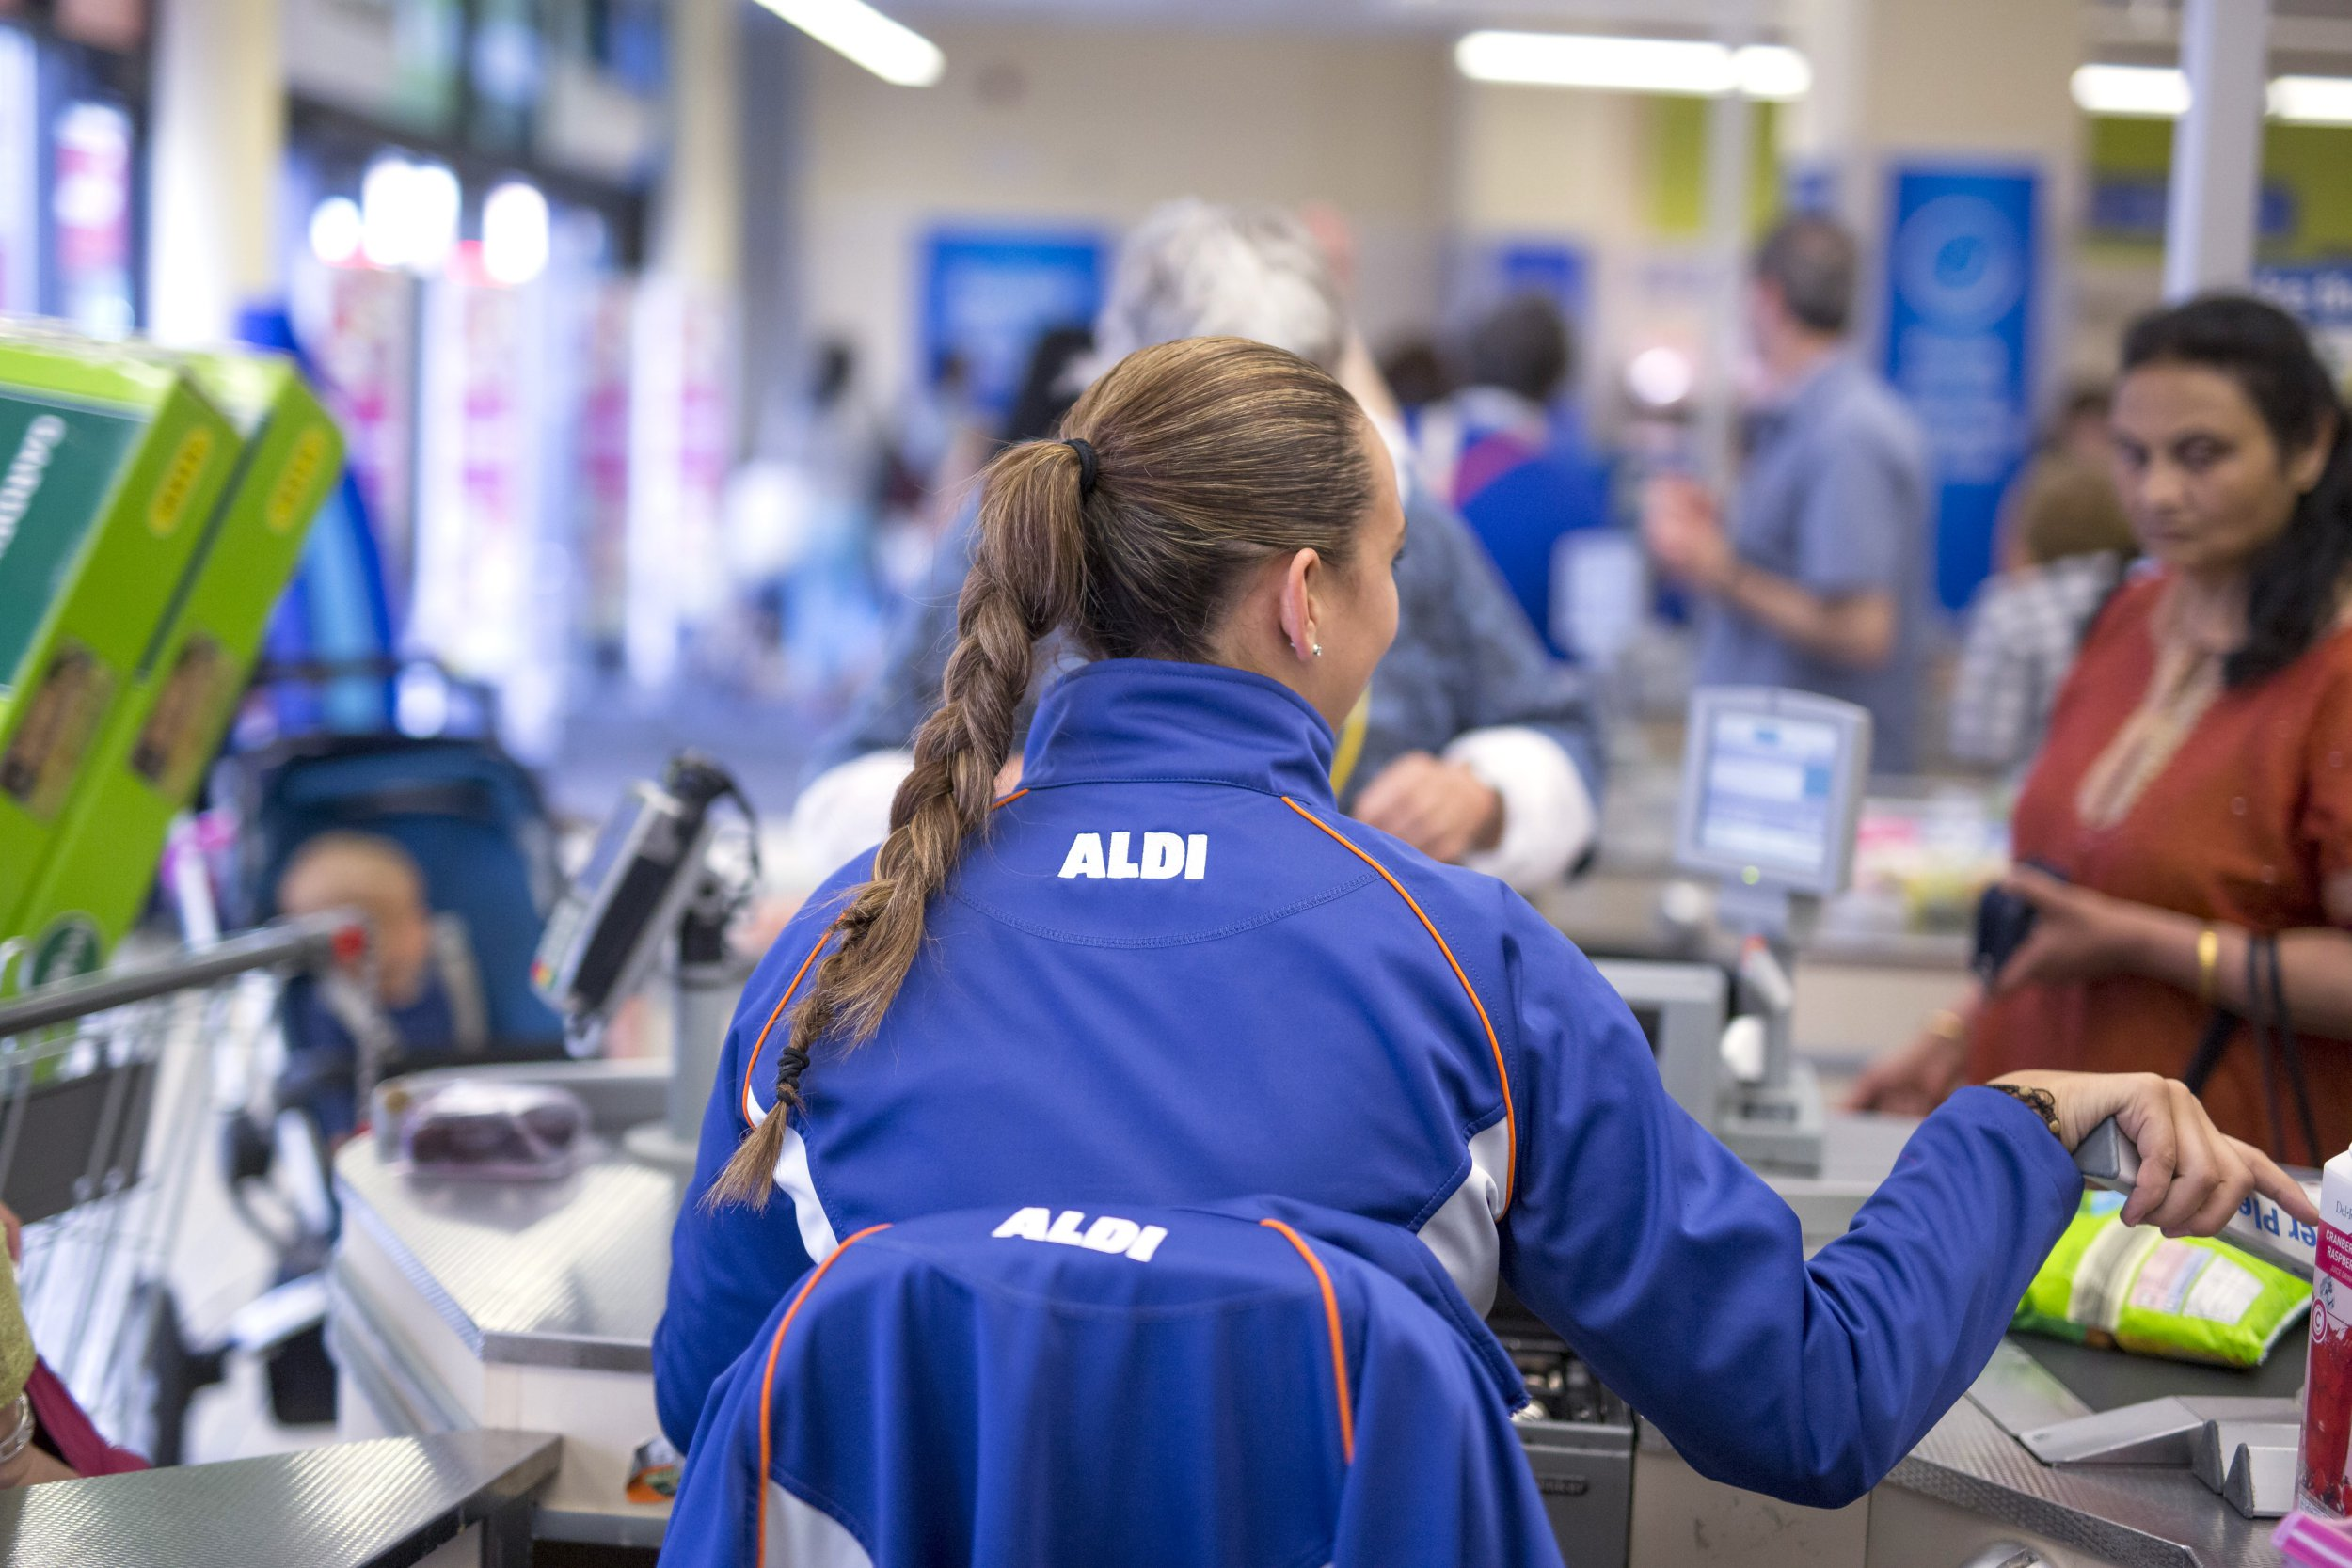 Aldi 'tells staff to scan 1,000 items in an hour or face the sack'